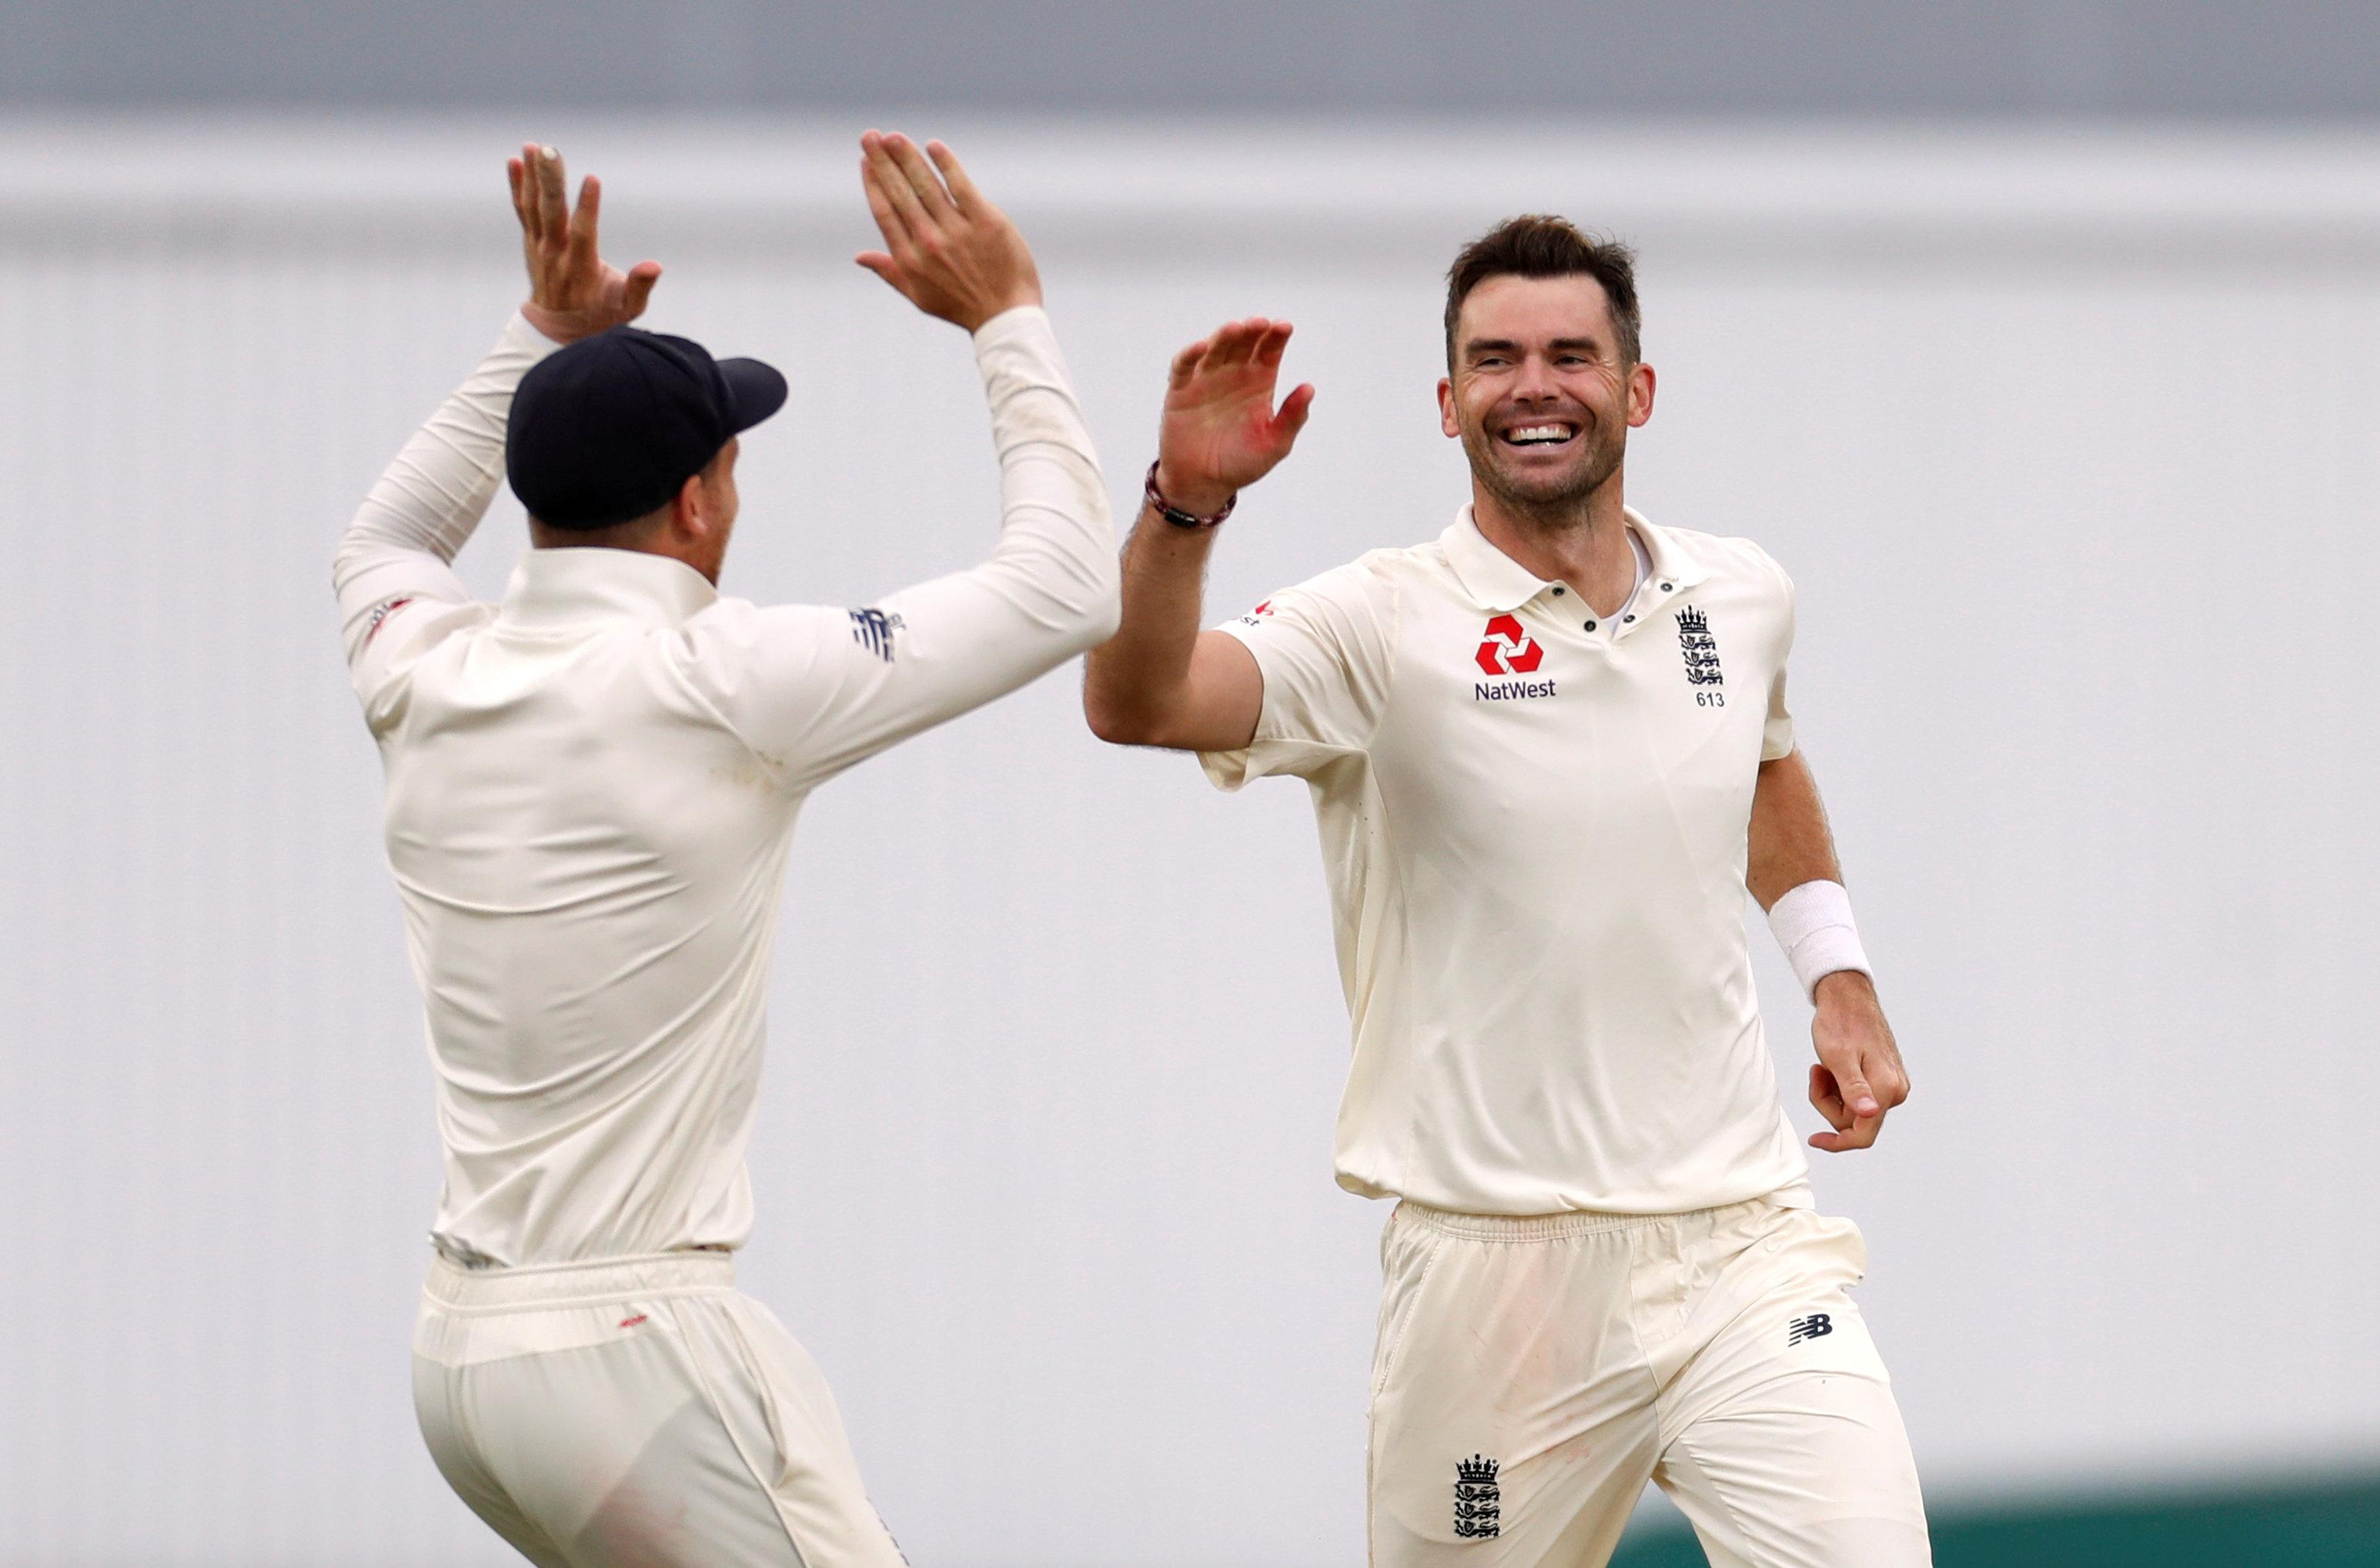 James Anderson celebrates after breaking the record